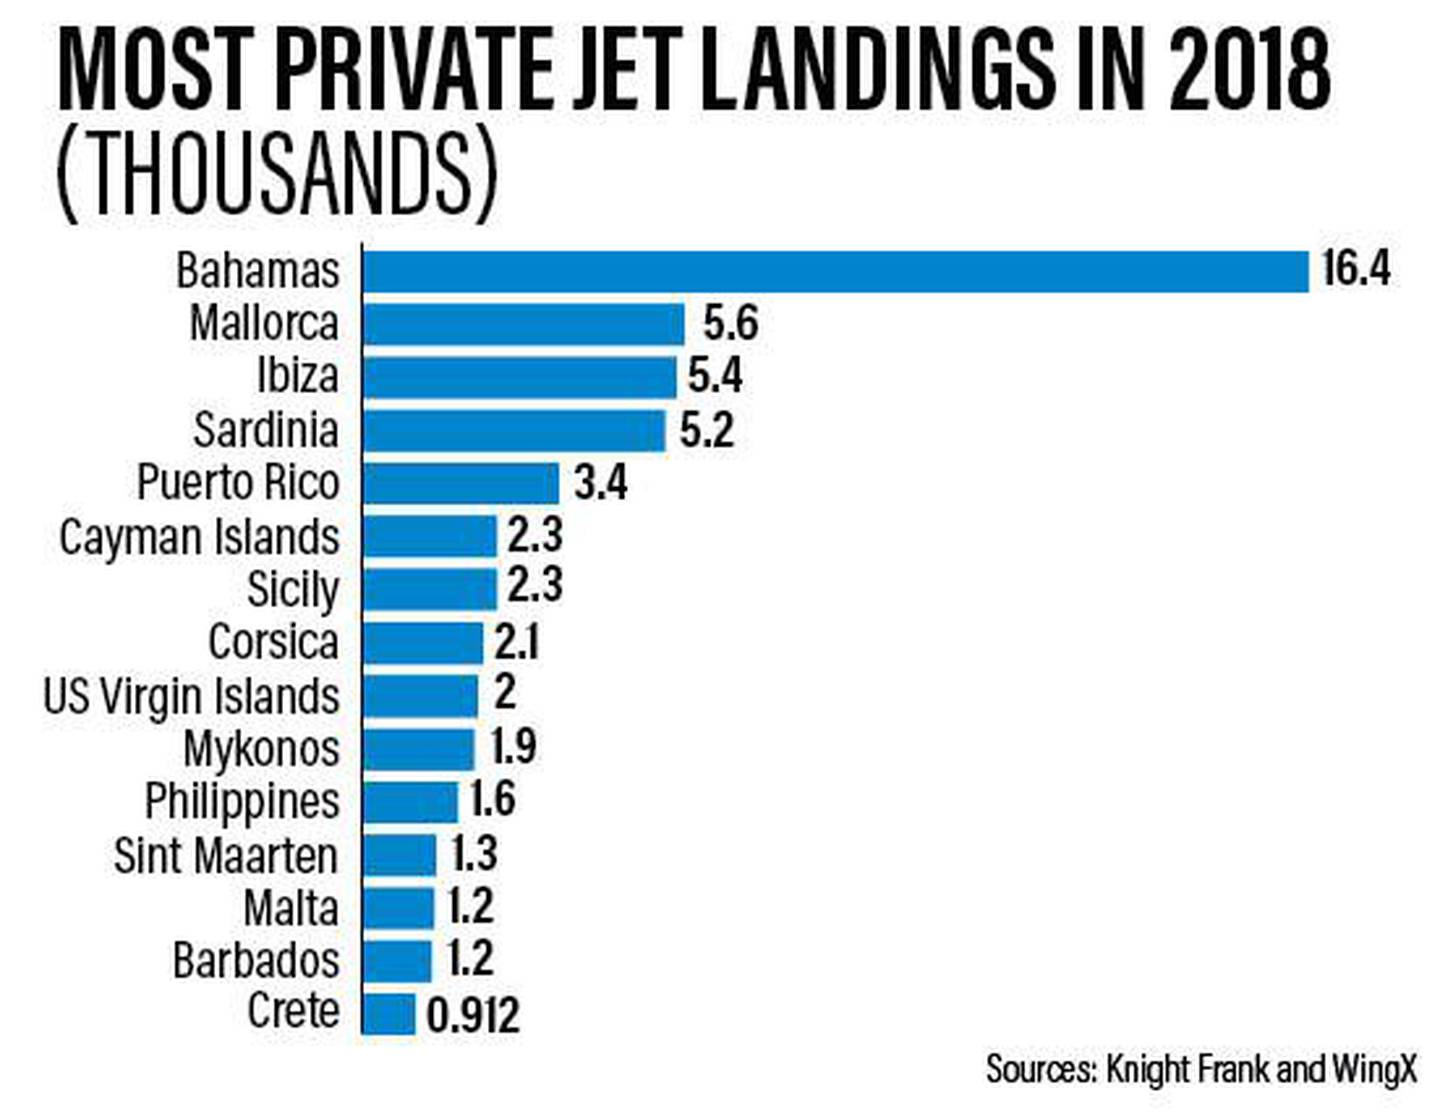 Most Private Jet Landings in 2018 graph